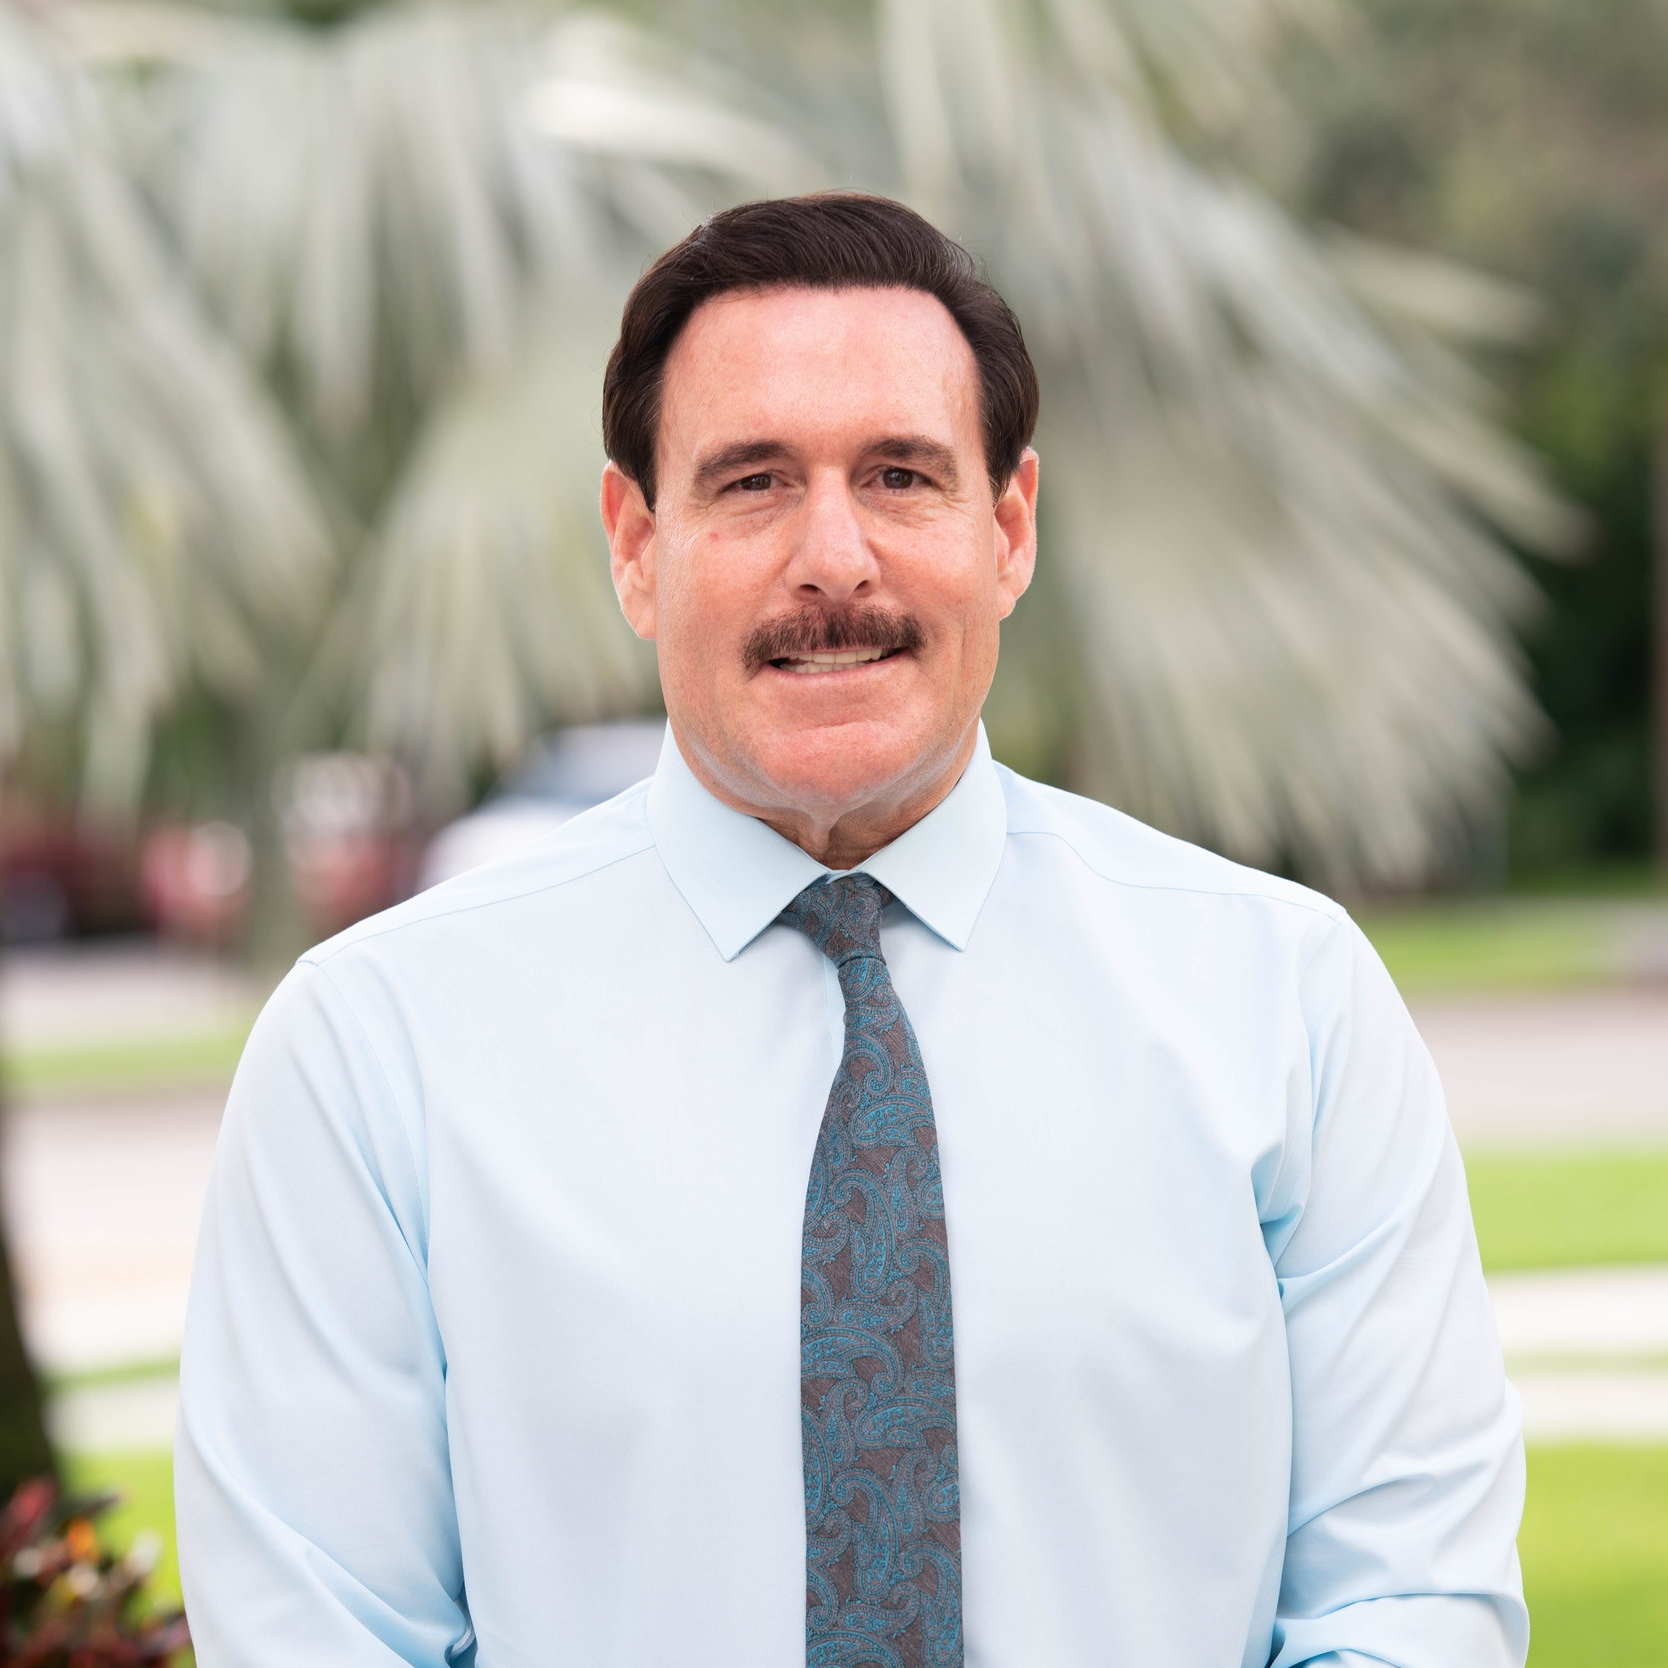 Brent Gray - Director of Spanish River Counseling Center